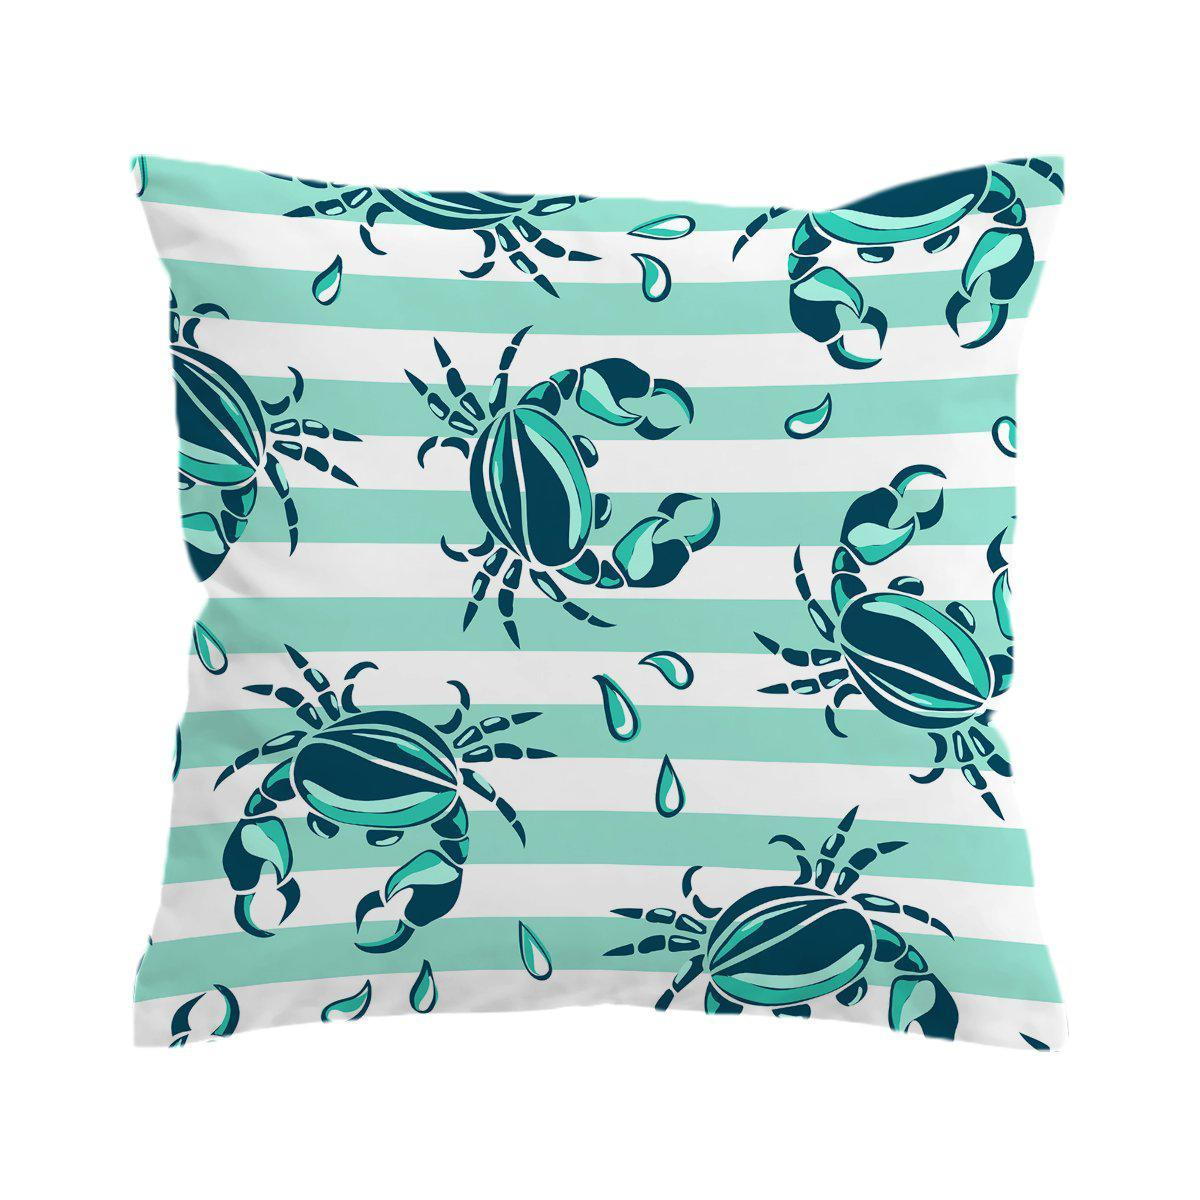 Lovely Little Crabs Pillow Cover-Coastal Passion